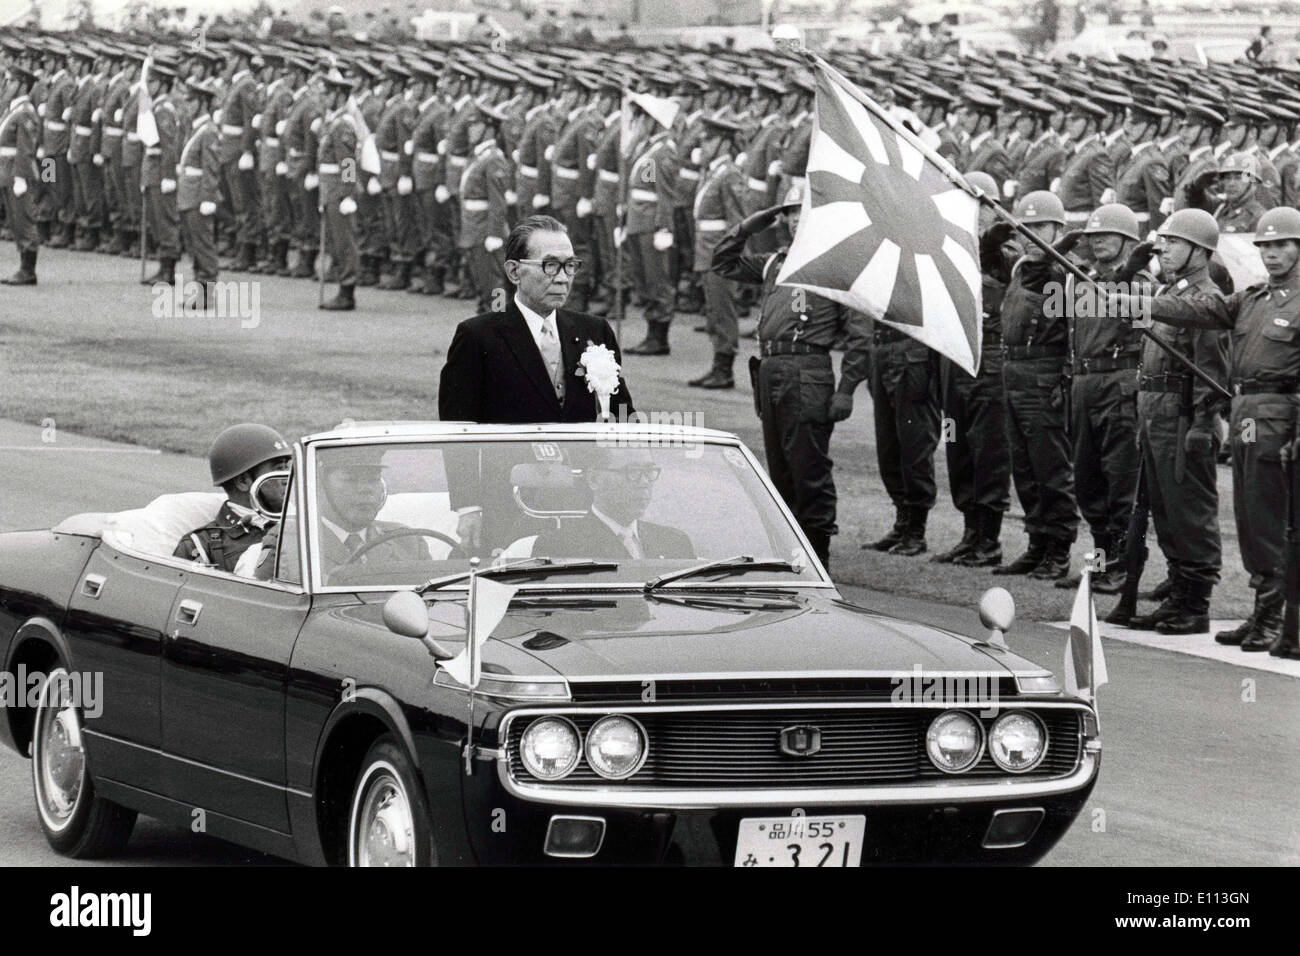 Oct 05, 1975 - Tokyo, Japan - Prime Minister of Japan TAKEO MIKI reviews troops from his car during an examination of the Japanese military. Exact date unknown. - Stock Image